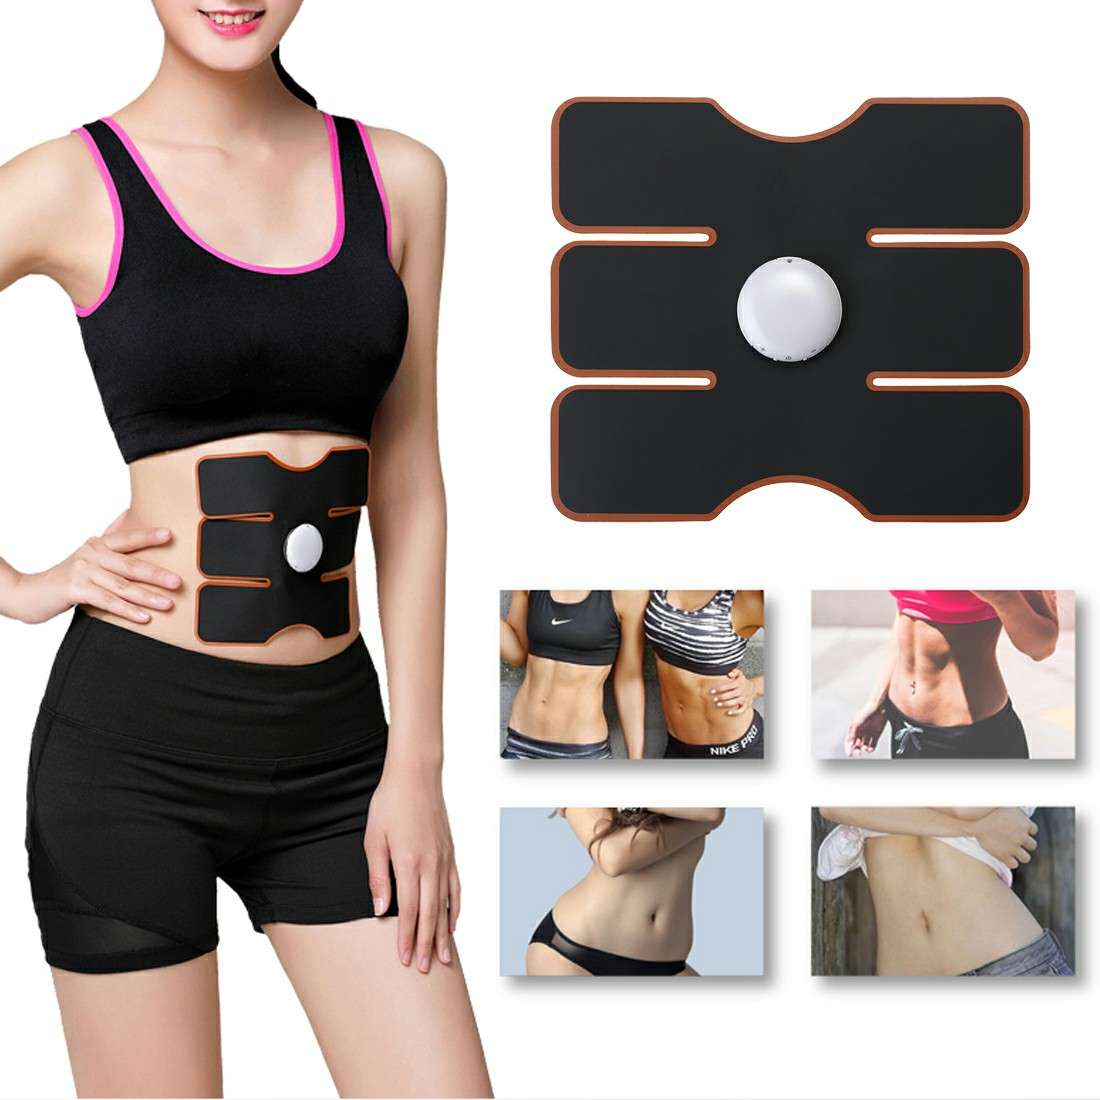 EMS Abdomen Muscle Stimulator Fitness Lifting Trainer Weight Loss | HOM-30025